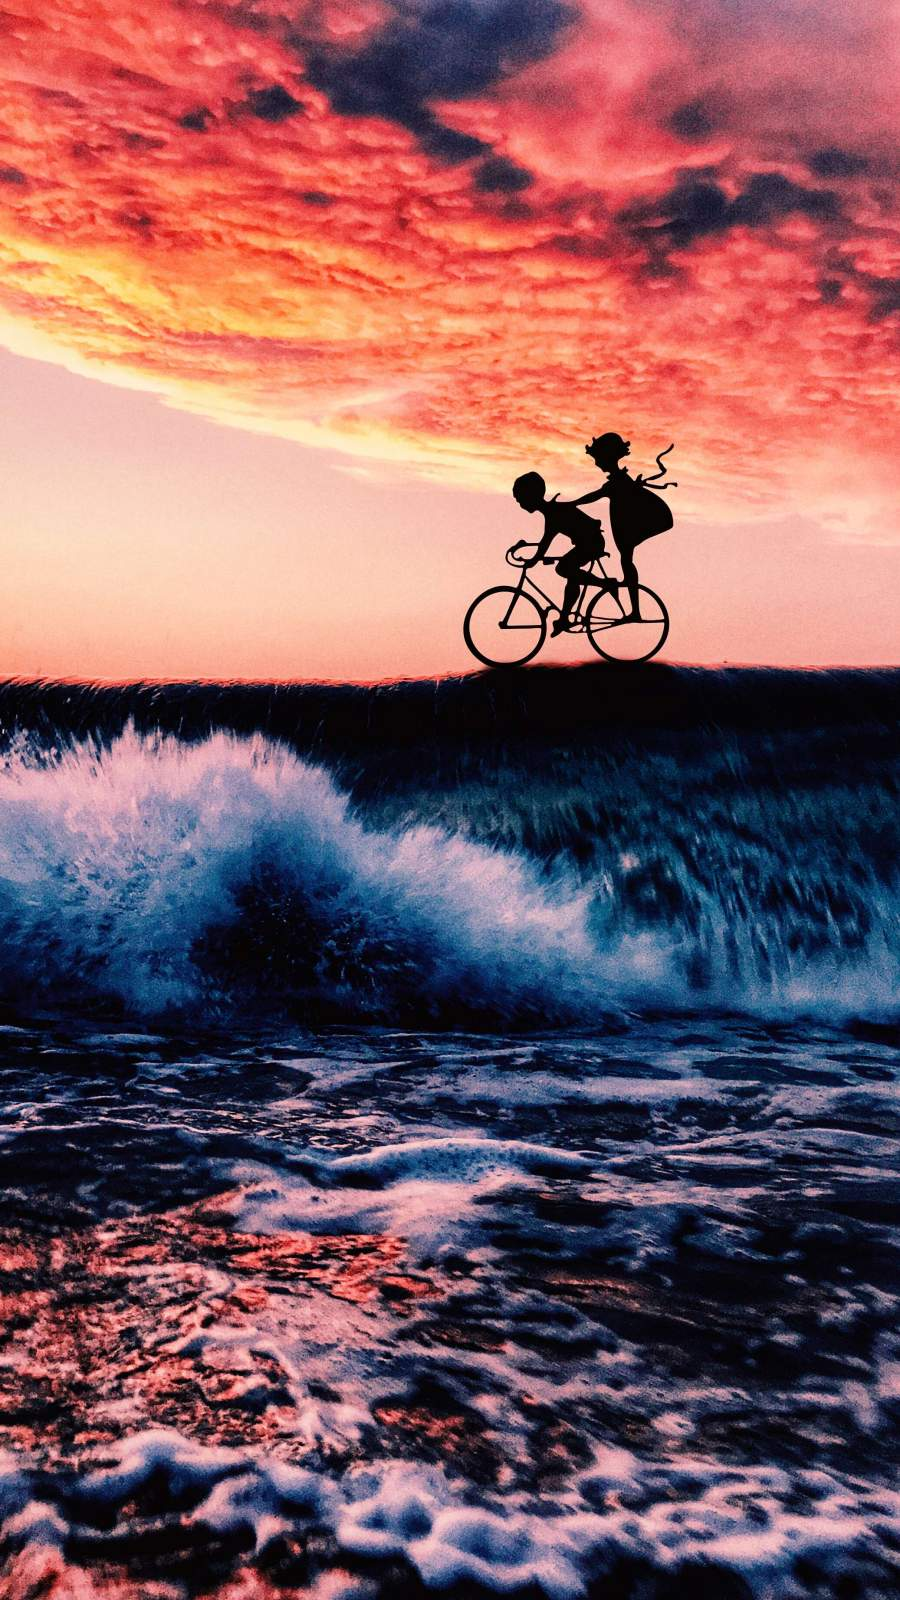 Cycling on Ocean iPhone Wallpaper